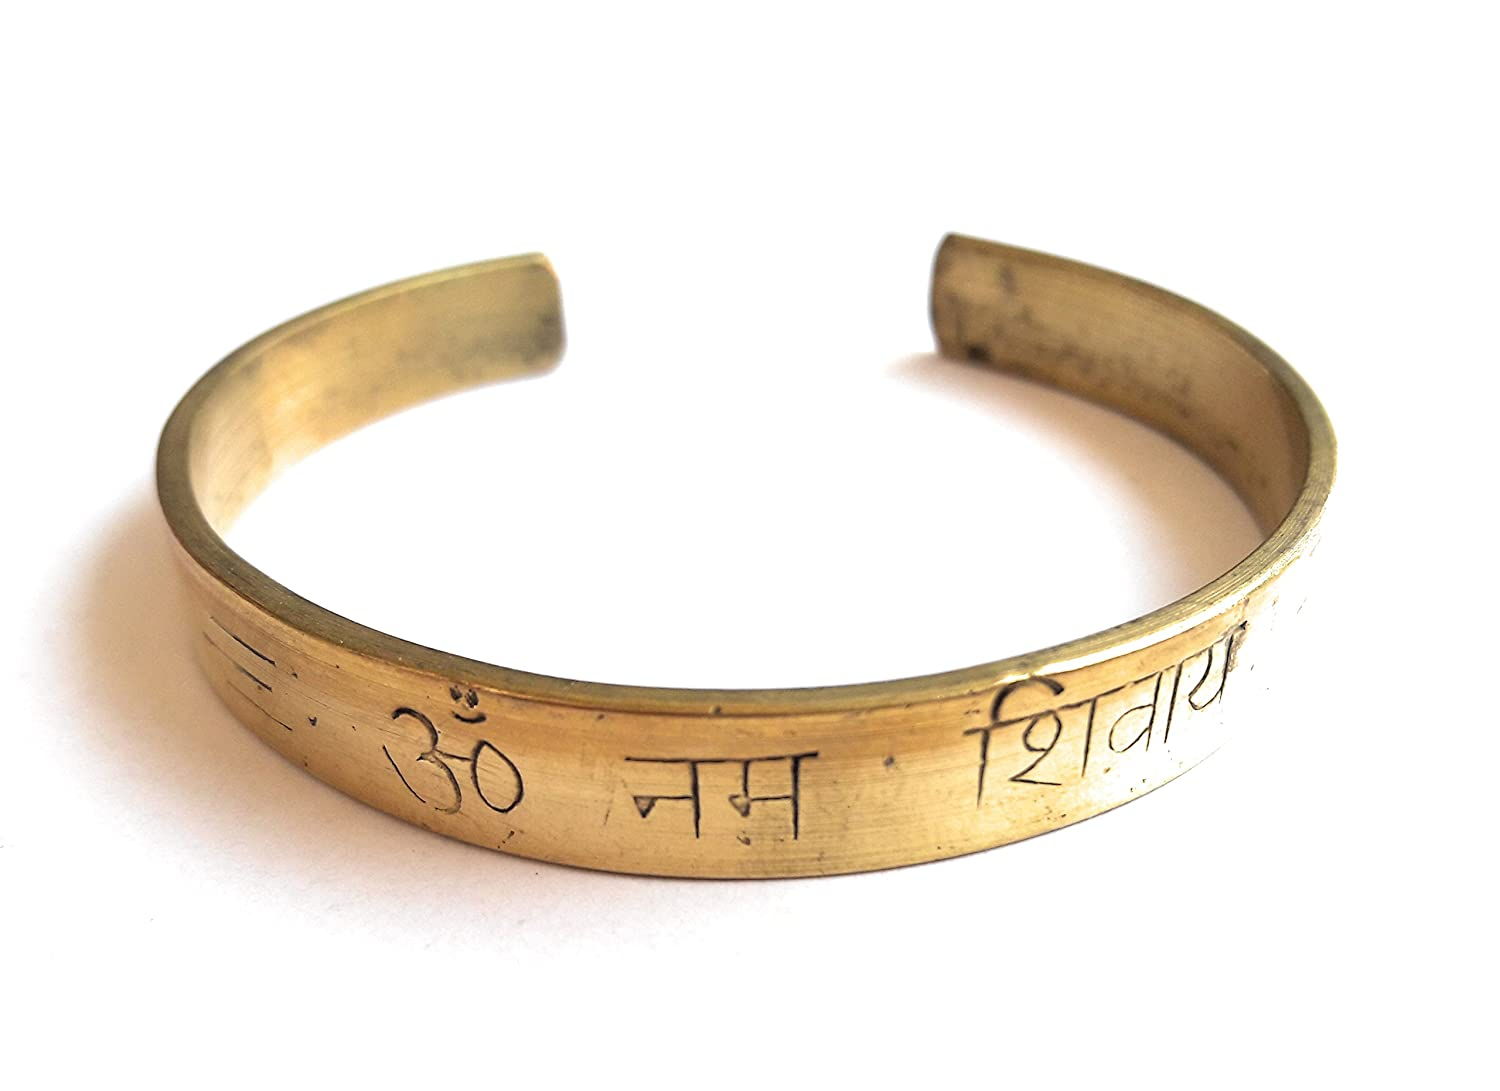 Om namah shivy engraved cuff brass bracelet for meditation fashion accessory for men women